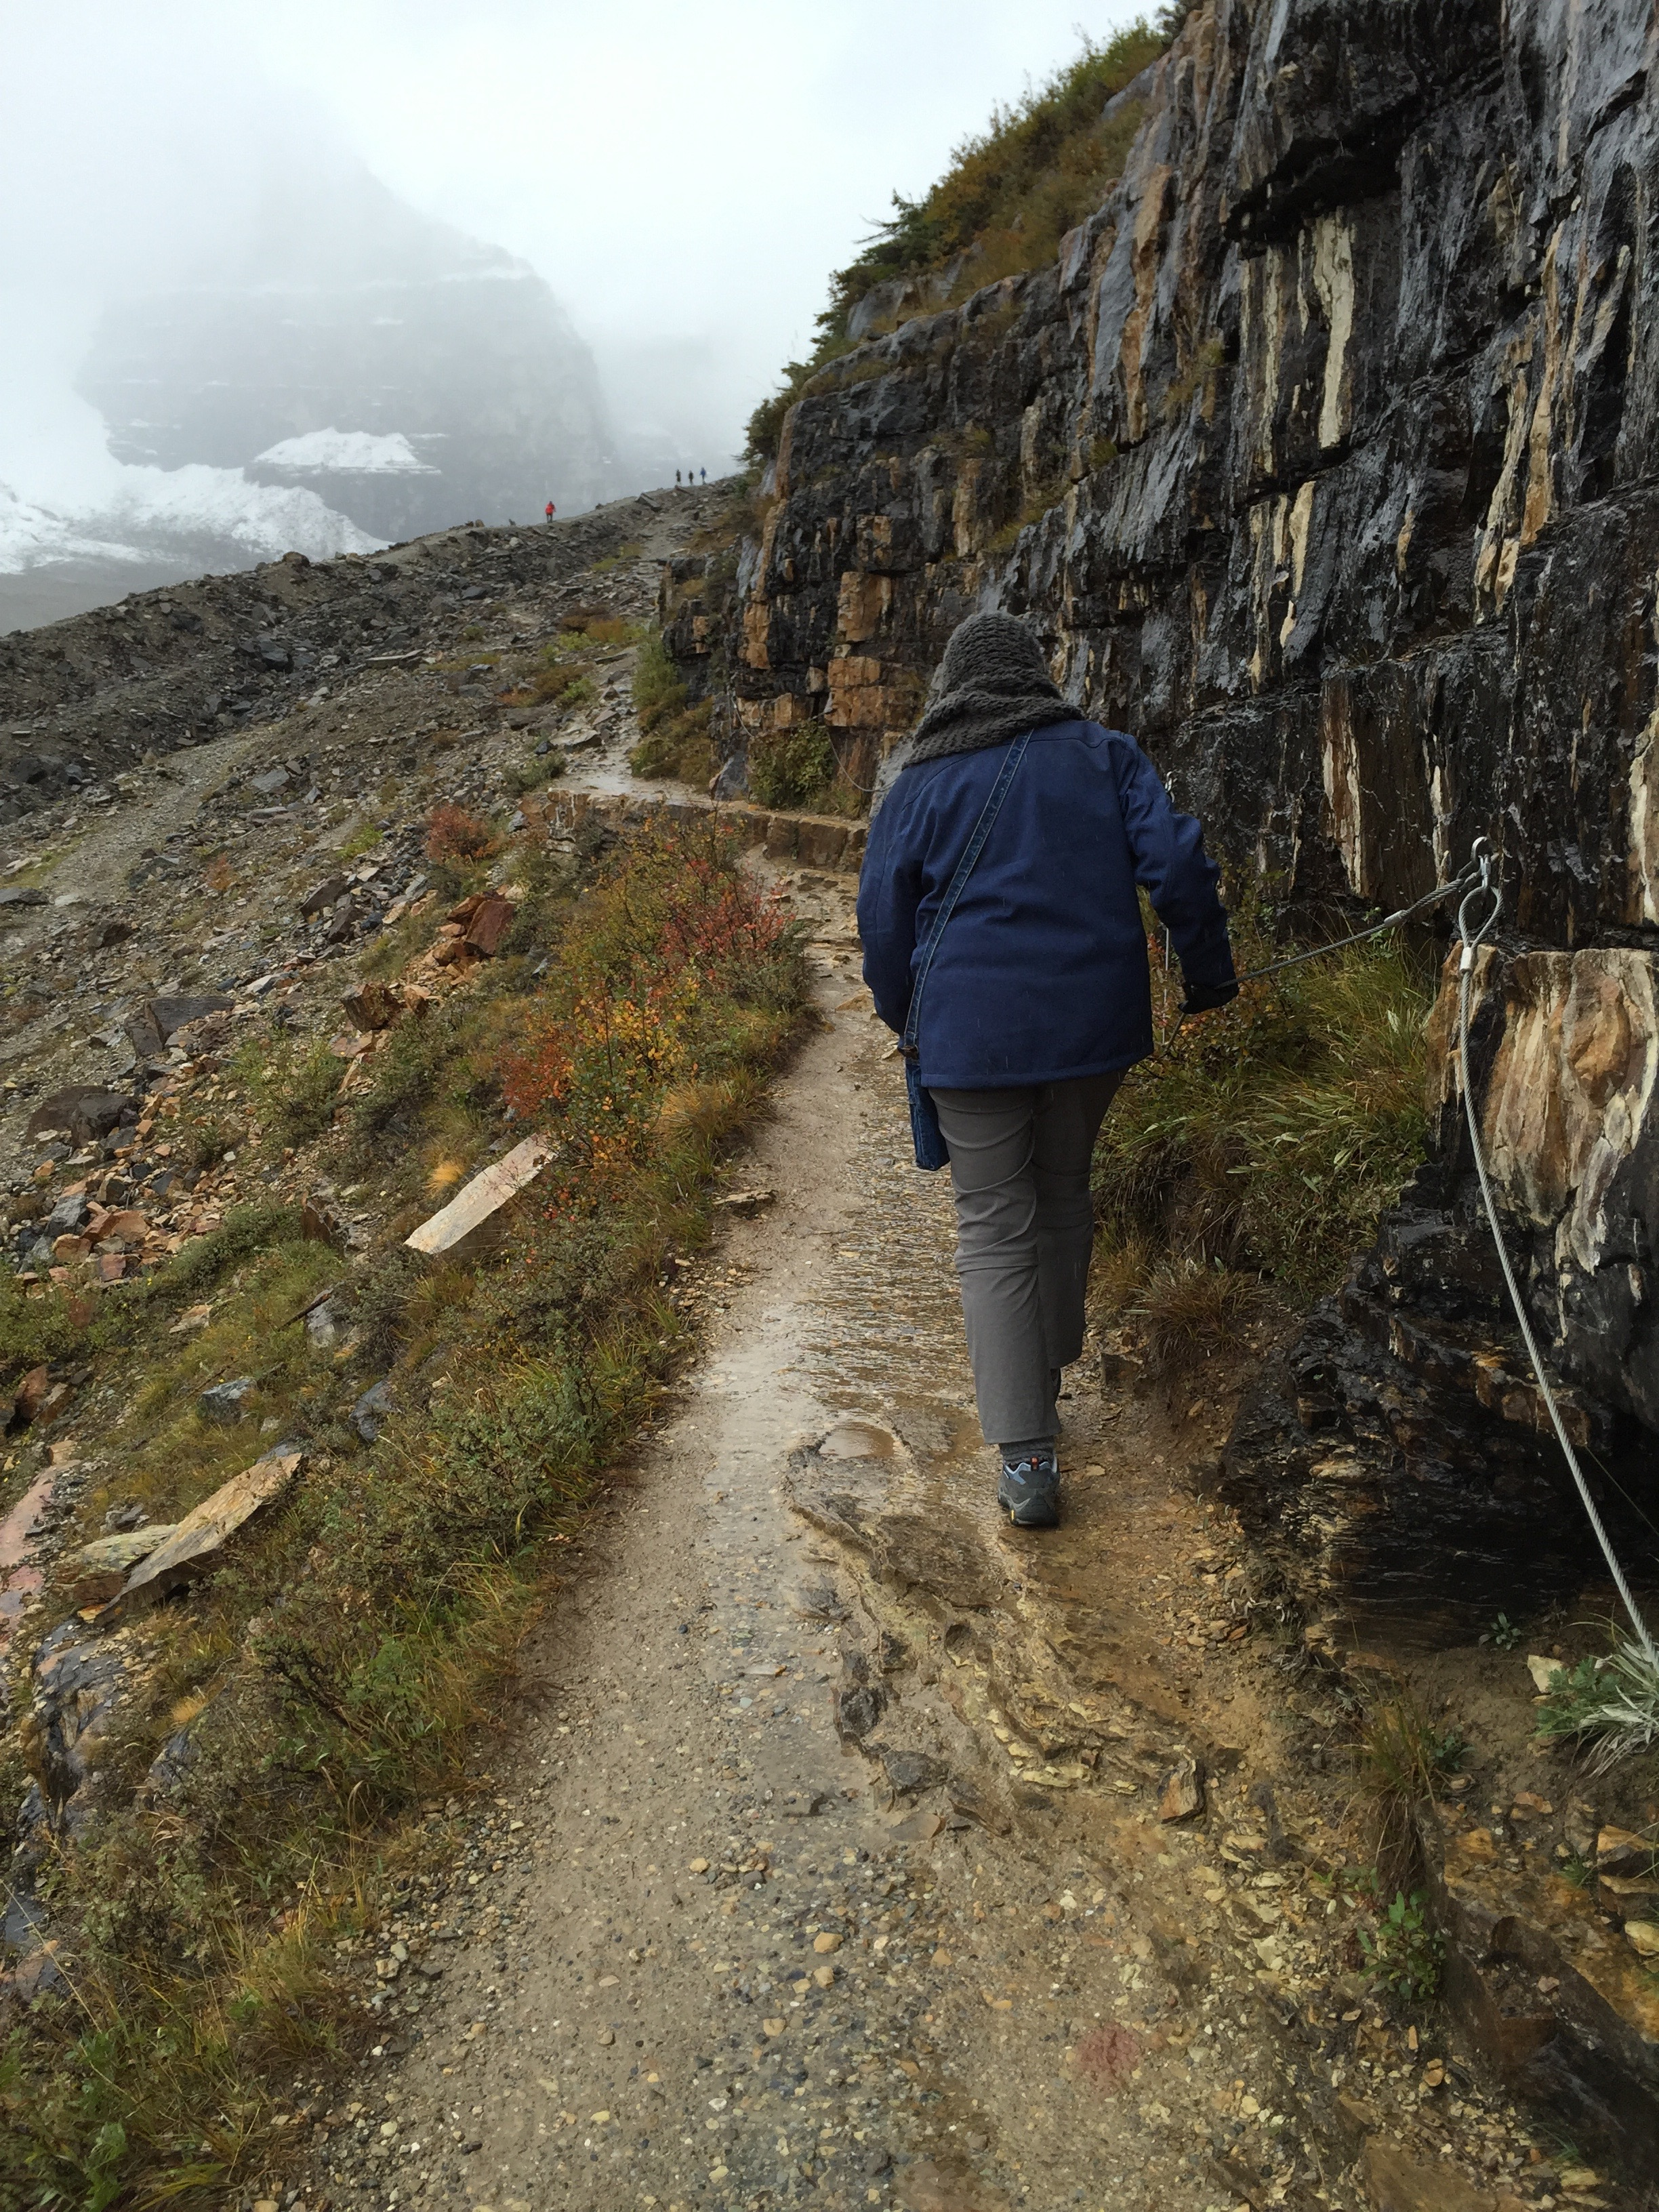 The widest part of the ledge section on the Trail of Plain of Six Glaciers - Banff National Park - Alberta Canada